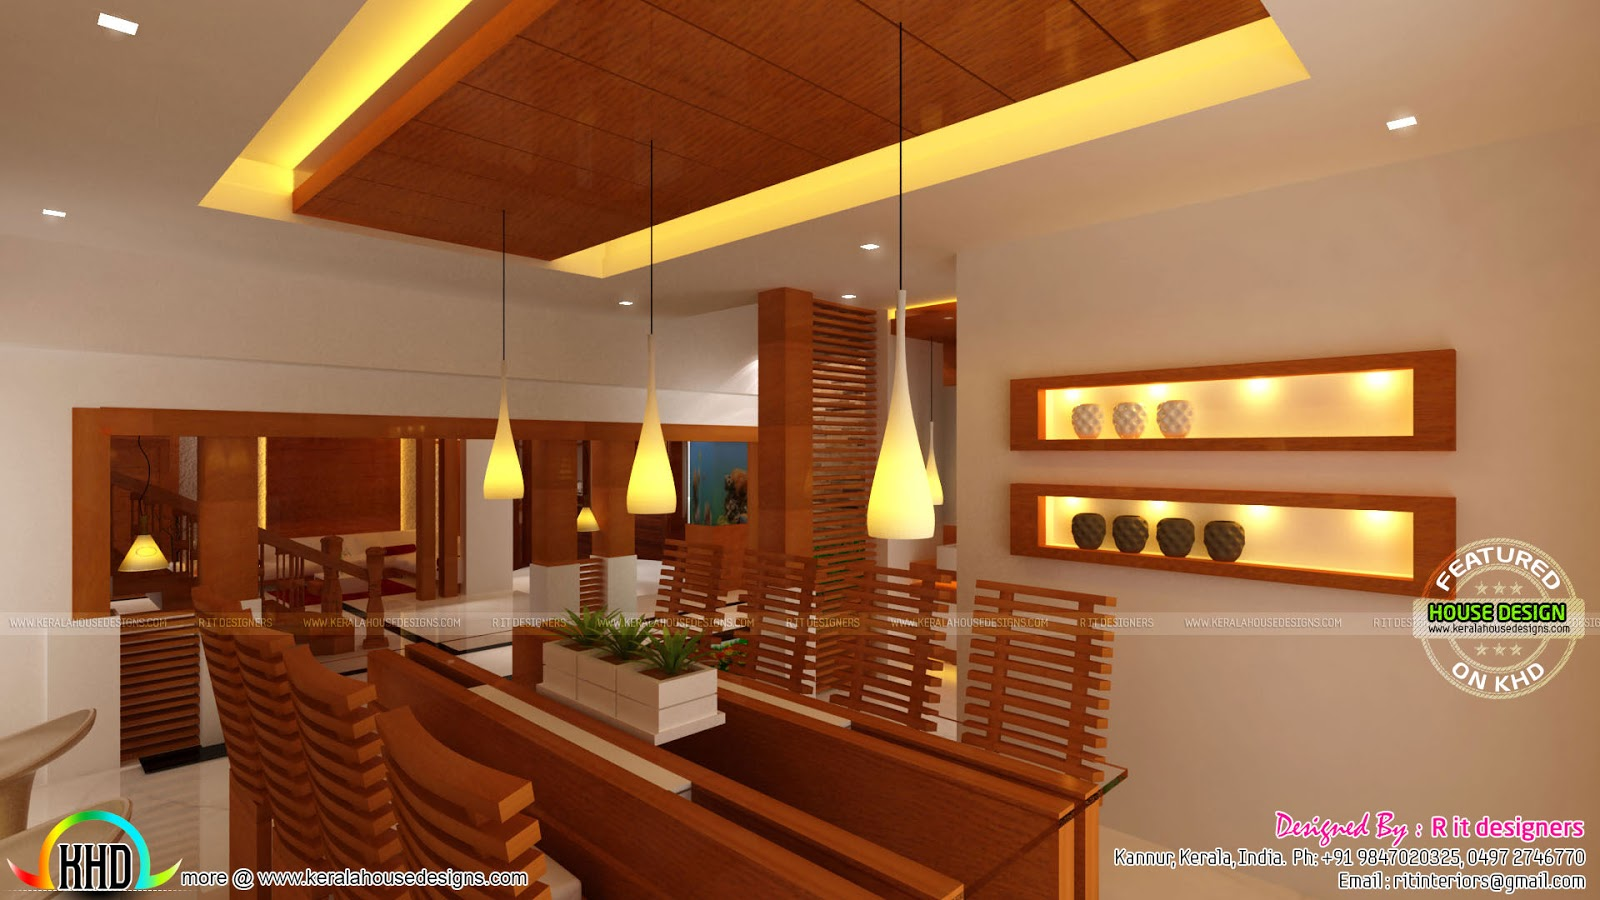 Wooden finish interior designs kerala home design and for House plans with inside photos